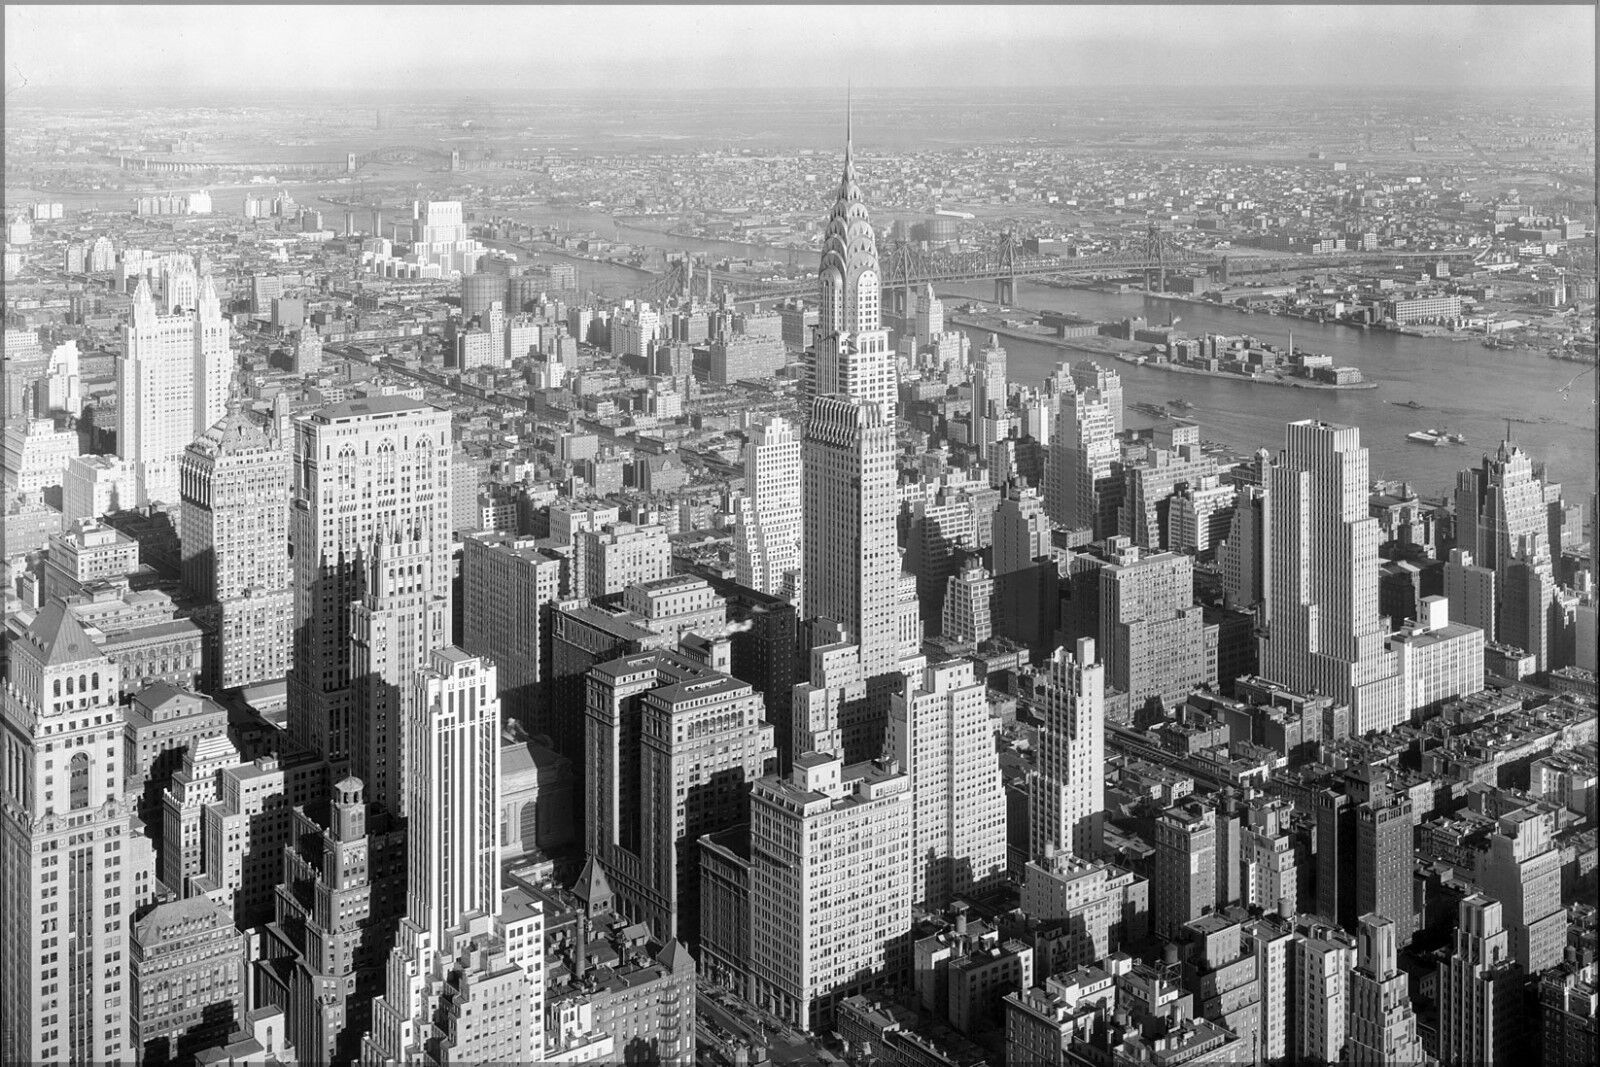 Poster, Many Größes; Chrysler Building Midtown Manhattan New York City 1932